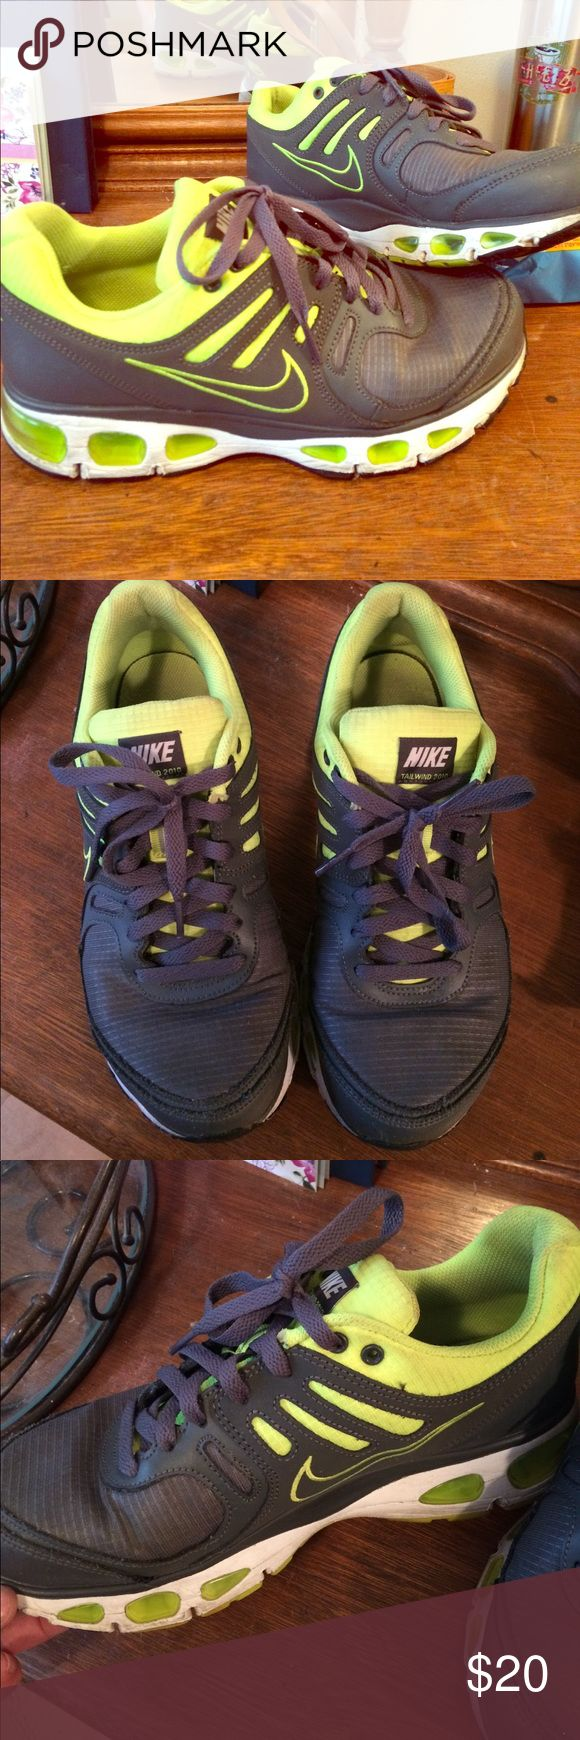 Nike Trailwind EUC Nike tennis shoes. Gray and a bright neon yellowish-green color. These are a 7 in youth so I believe they would fit a ladies 9. Some fading and wear on the white of the bottoms of the shoe. But nothing major. Make me an offer!!! Shoes Sneakers